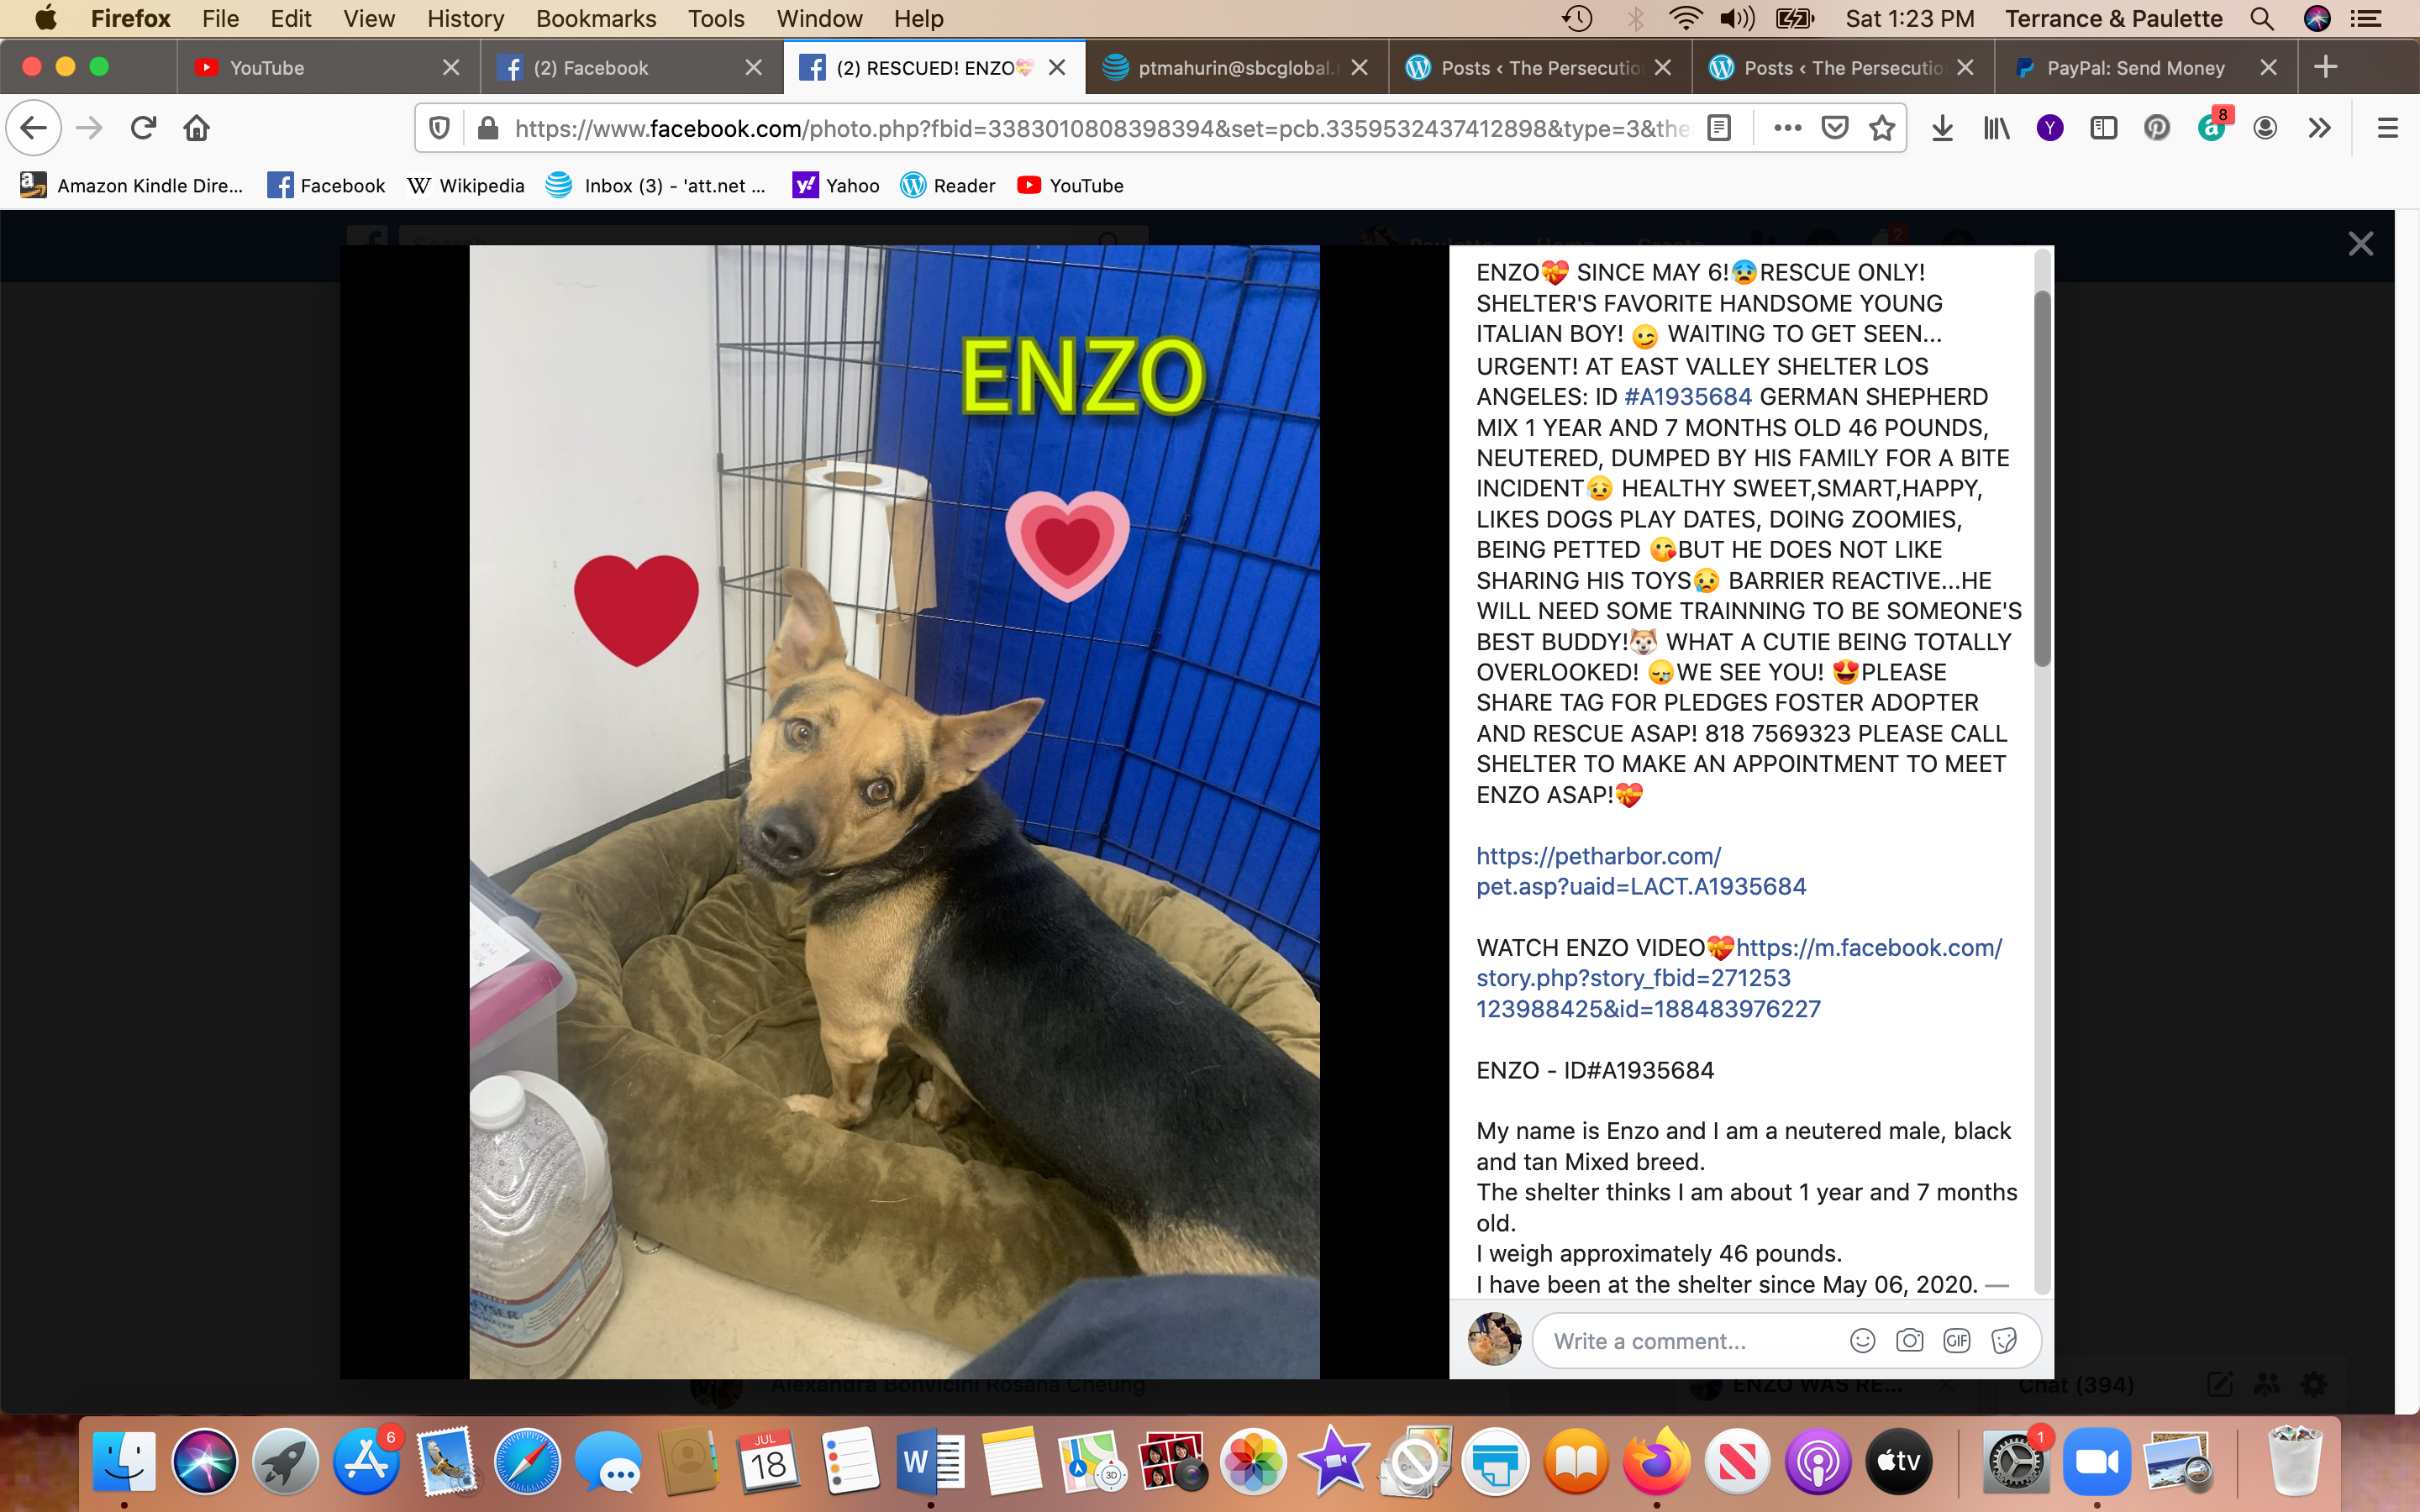 Enzo rescued Screen Shot 2020-07-18 at 1.23.02 PM